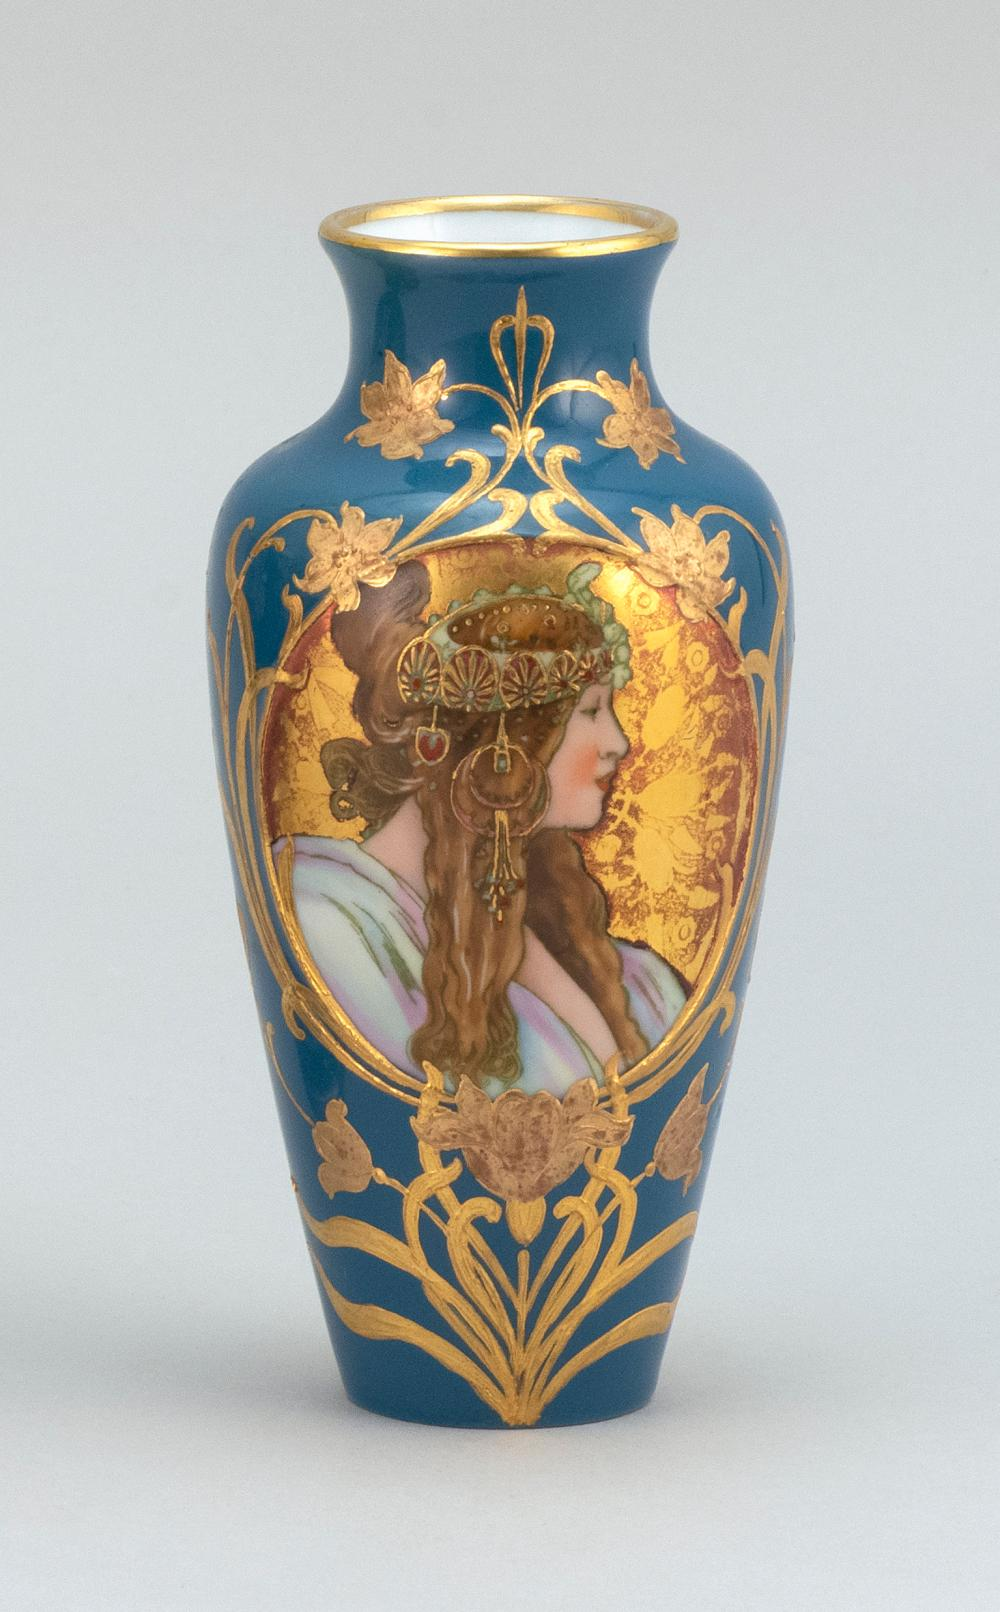 """PORCELAIN VASE With an Art Nouveau-style portrait of a woman on a teal blue ground. Potter's mark on base. Height 5.6""""."""